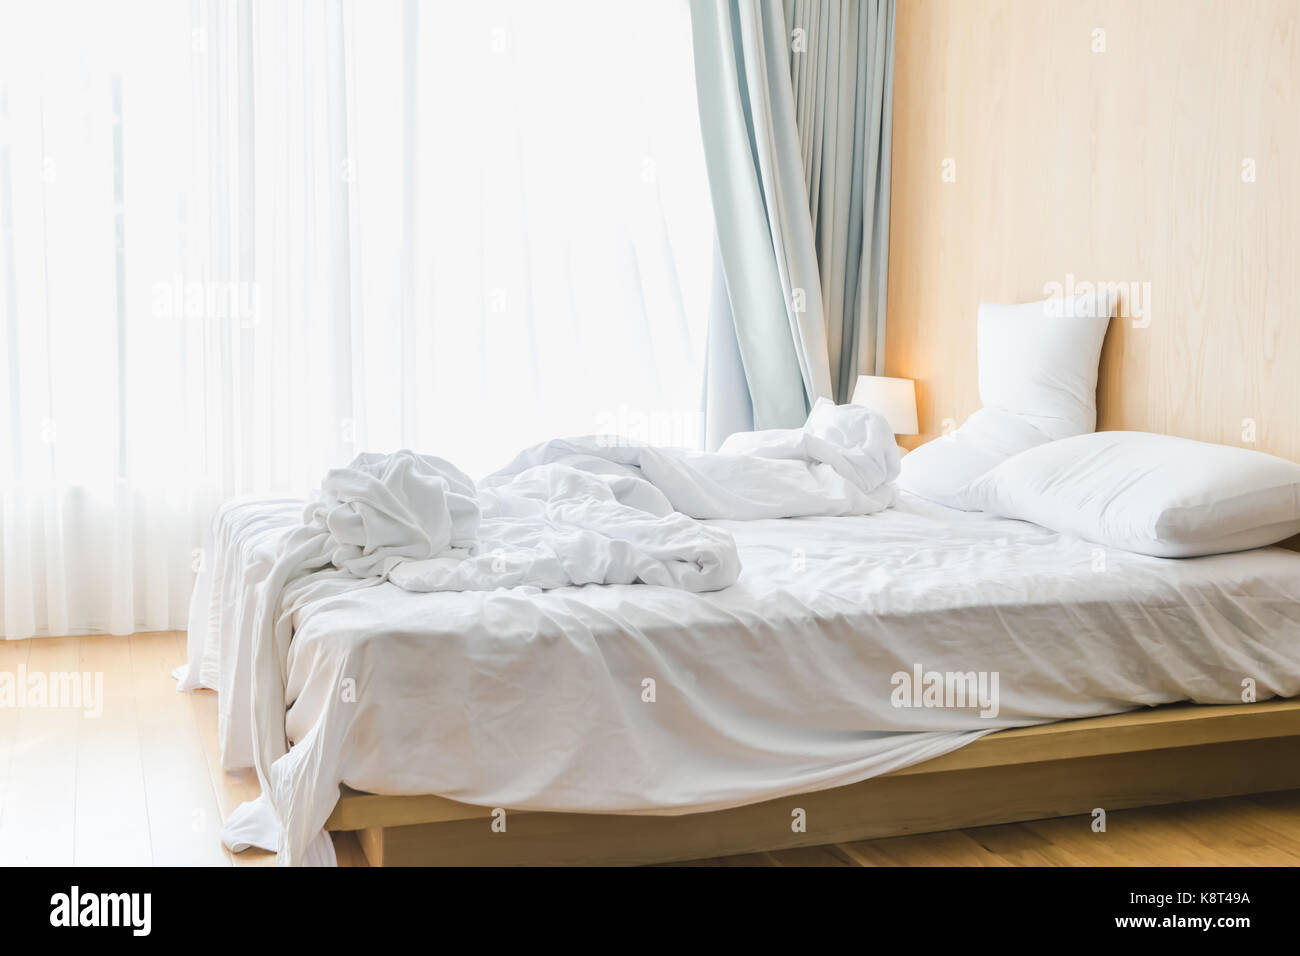 for pillow your authentic are foam hotel bamboo sheets comfort neck memory comforter pillows of gallery good